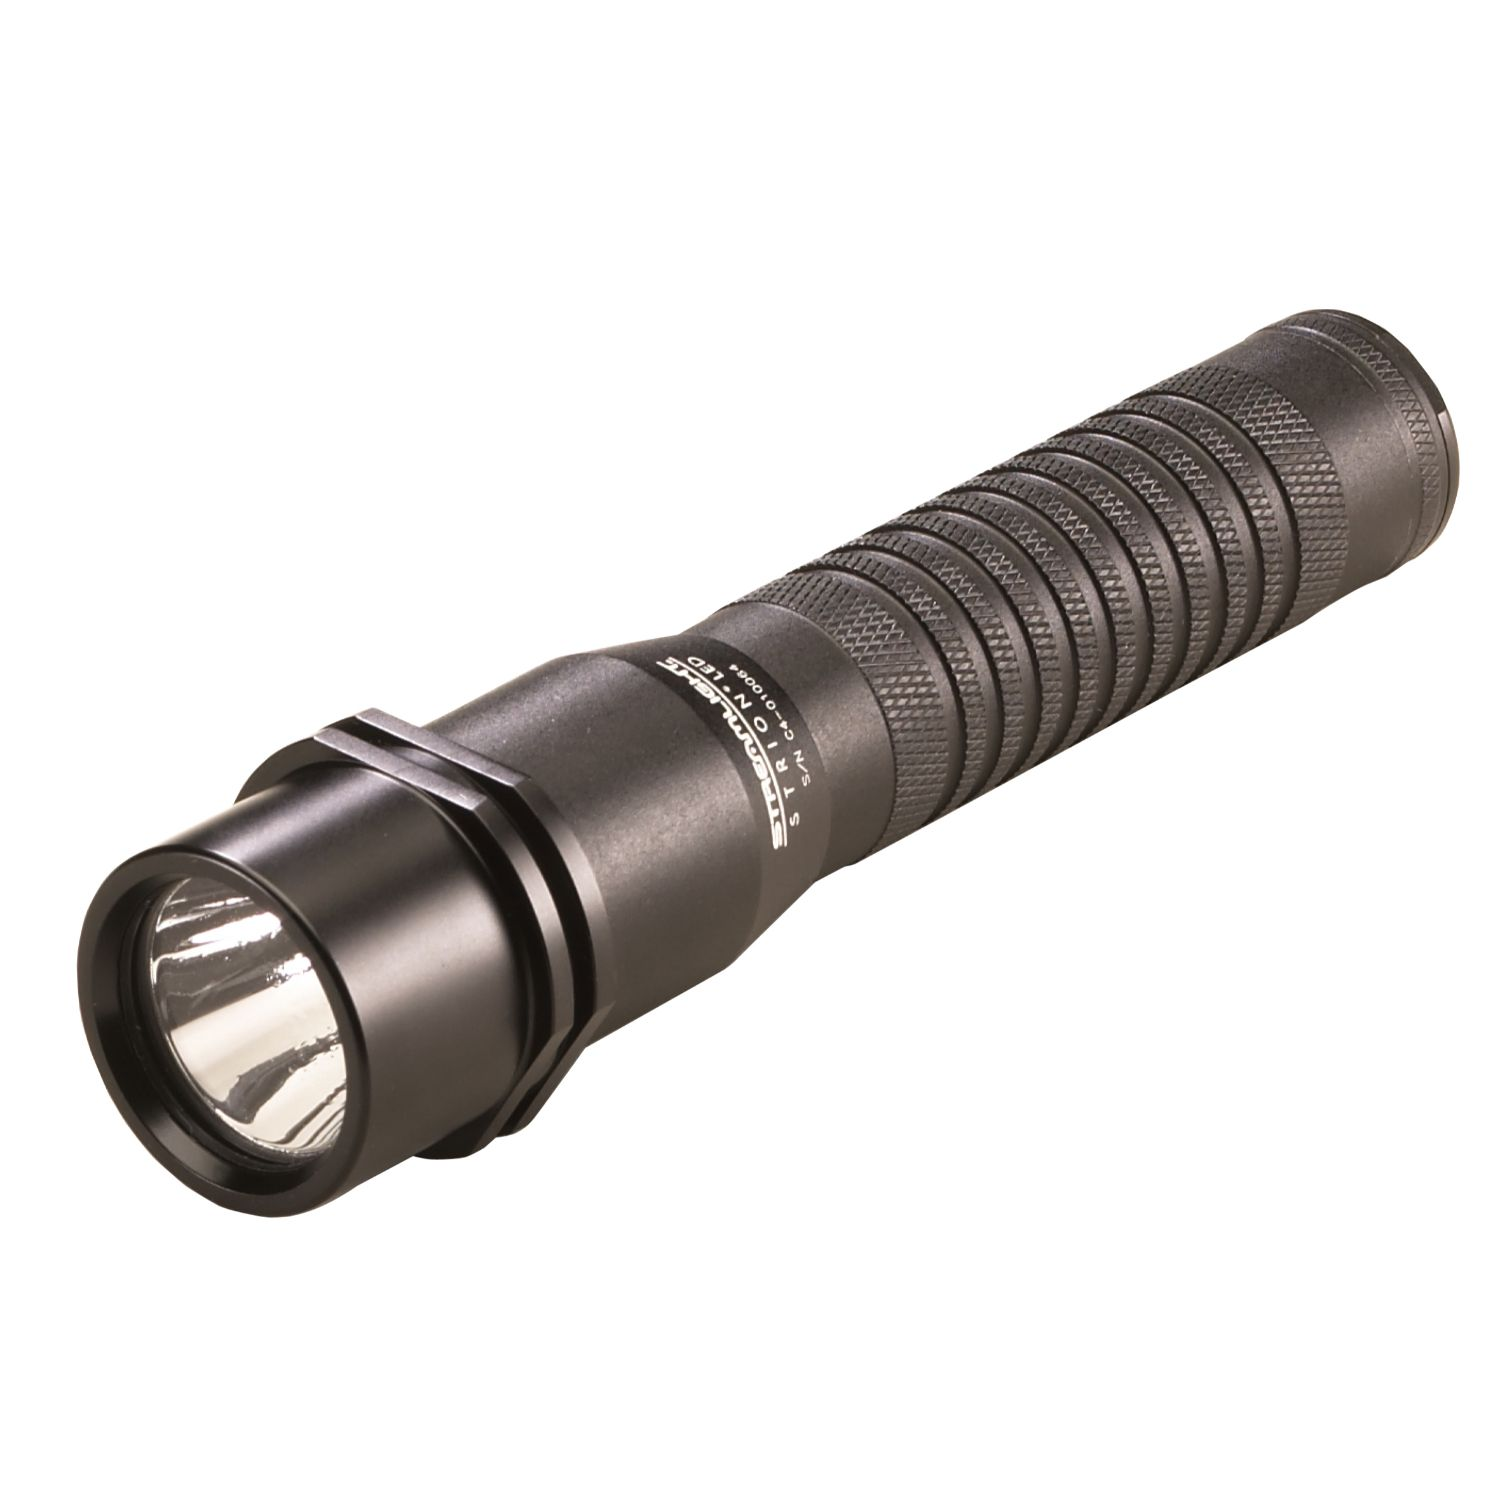 Streamlight Strion LED Bright Compact Recharge Flashlight